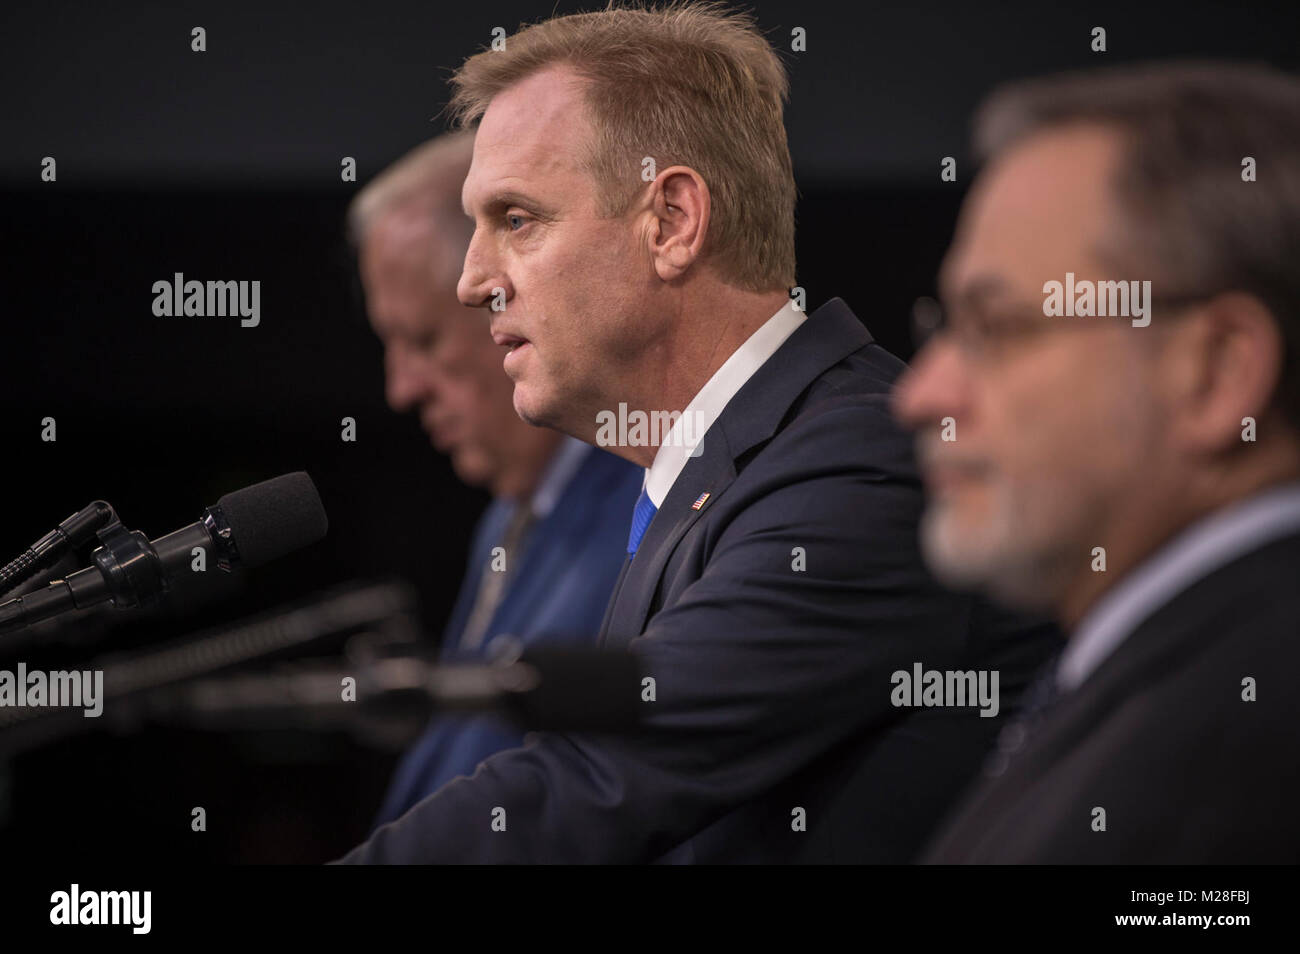 Under Secretary Of State For Defence Stock Photos & Under ...